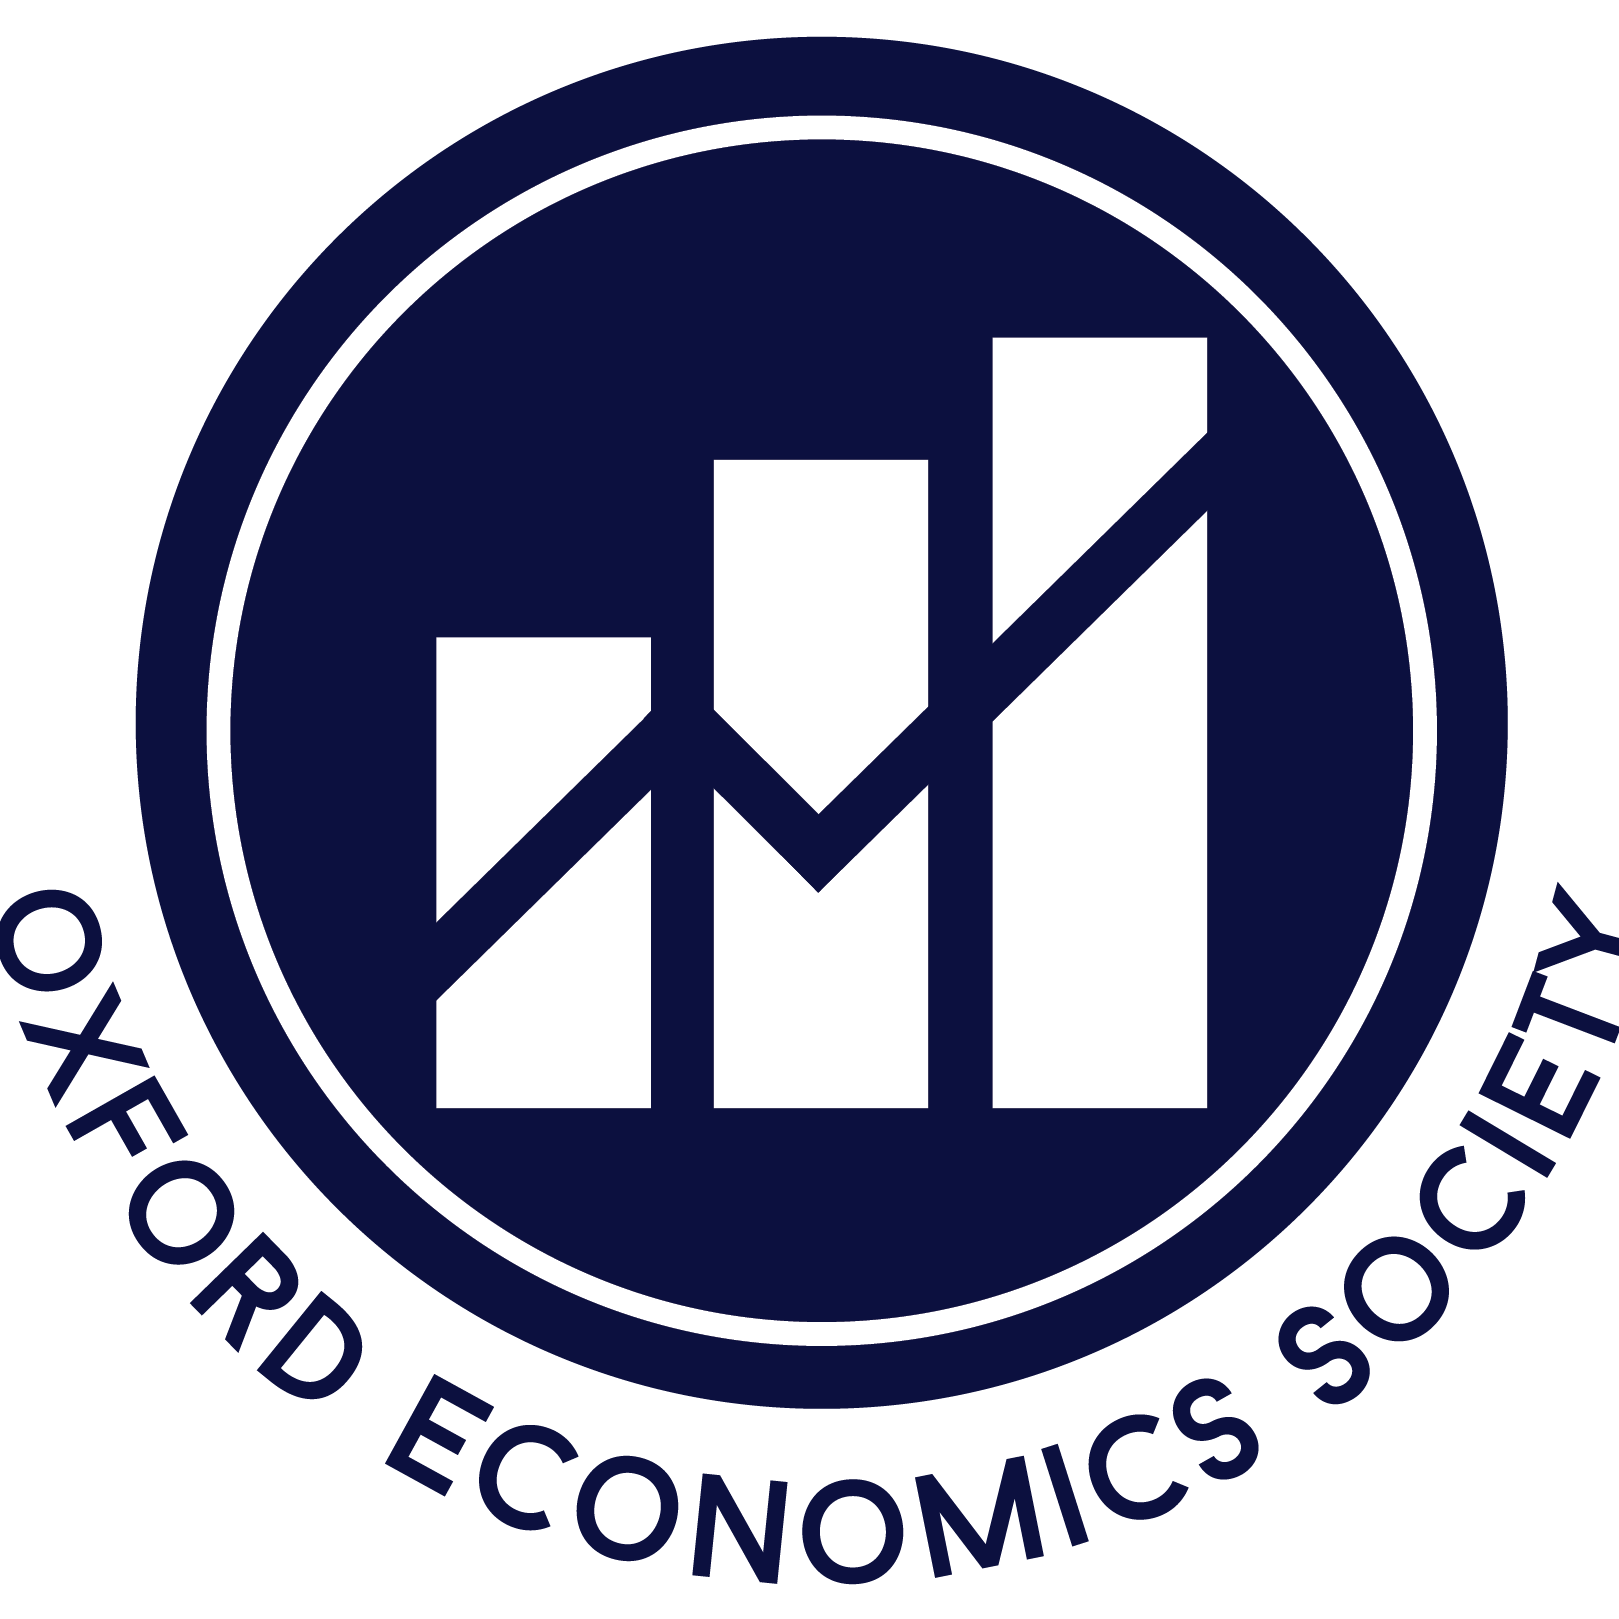 oxeconsoc.png